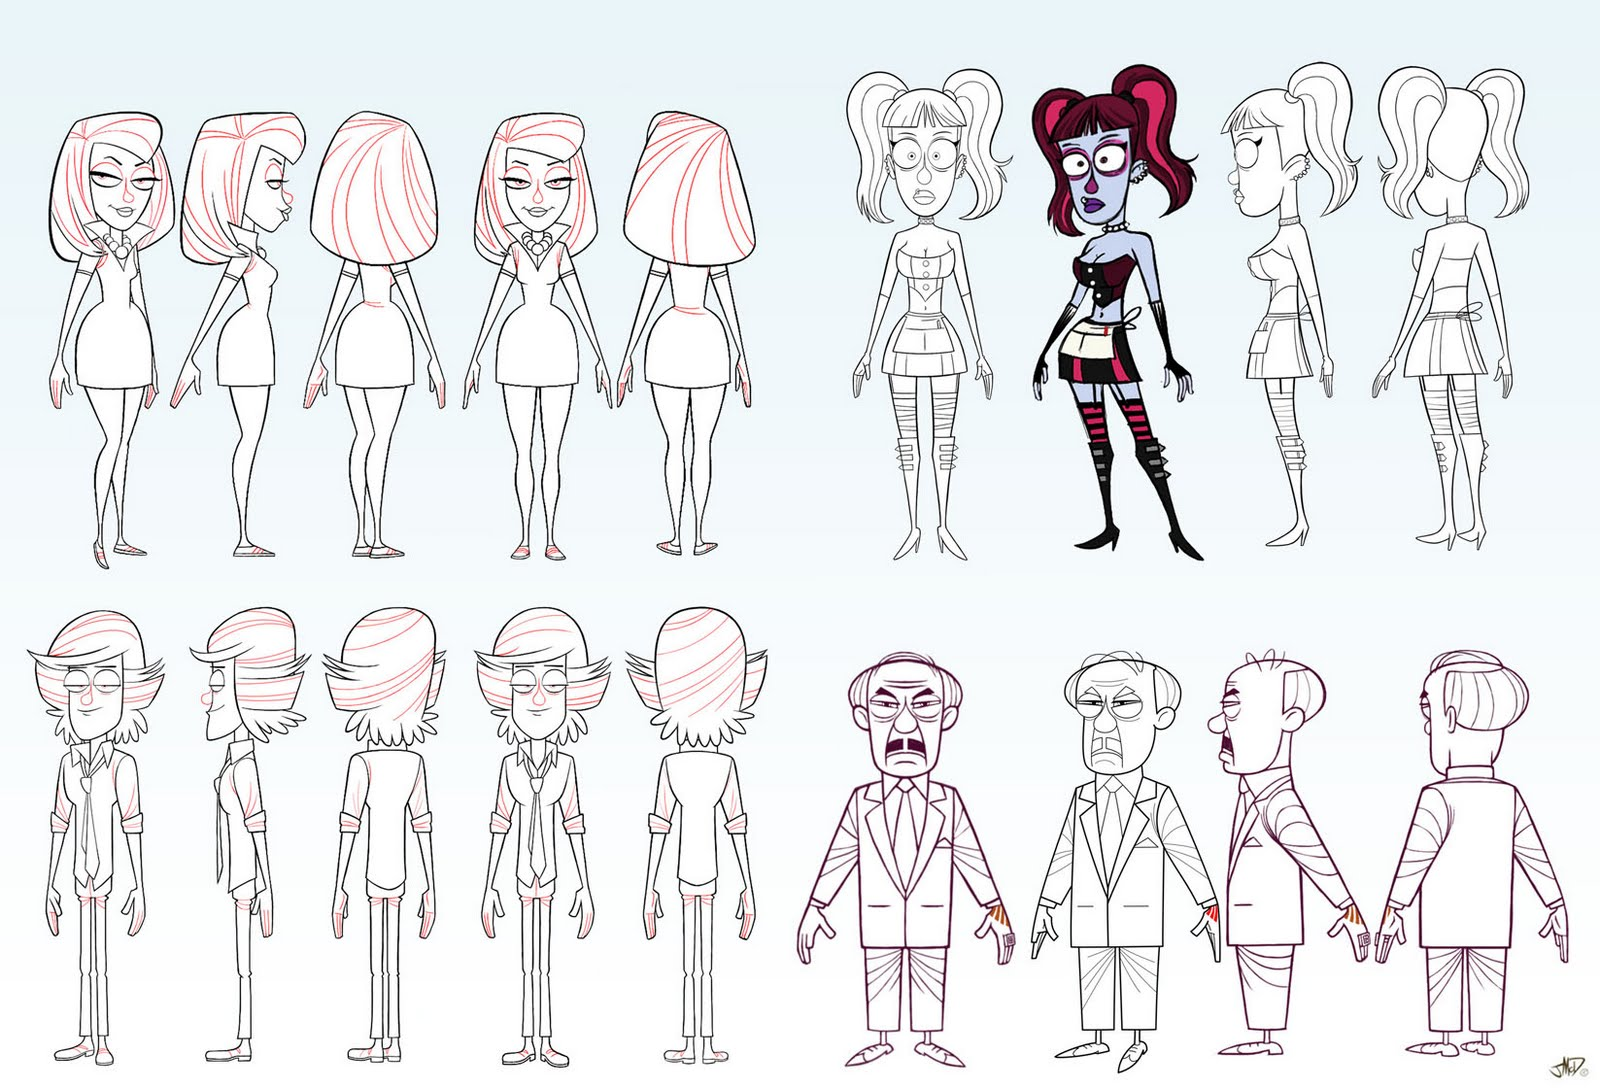 Character Design Sheet Pixar : A c gothwaiters v animation insider